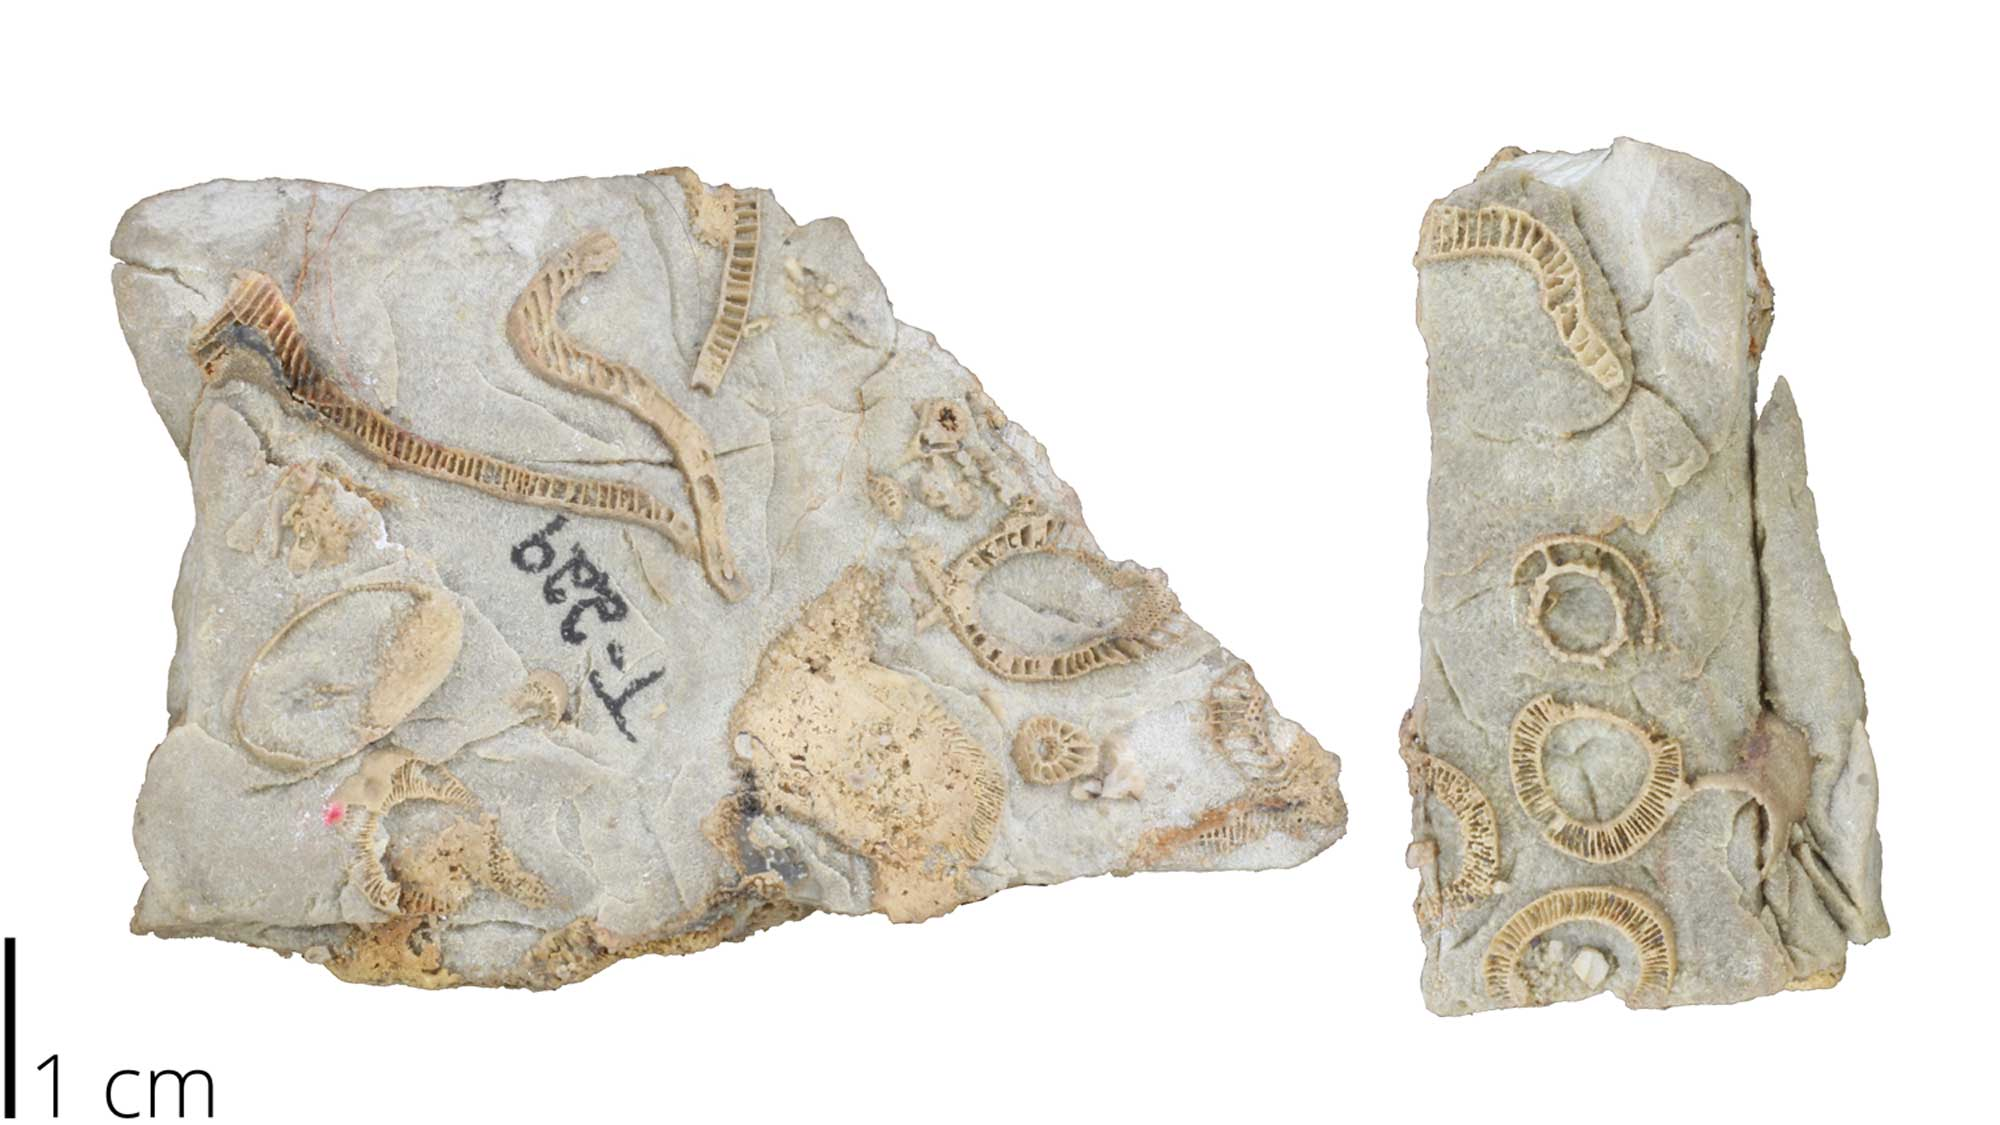 Photograph of archaeocyathan fossils.